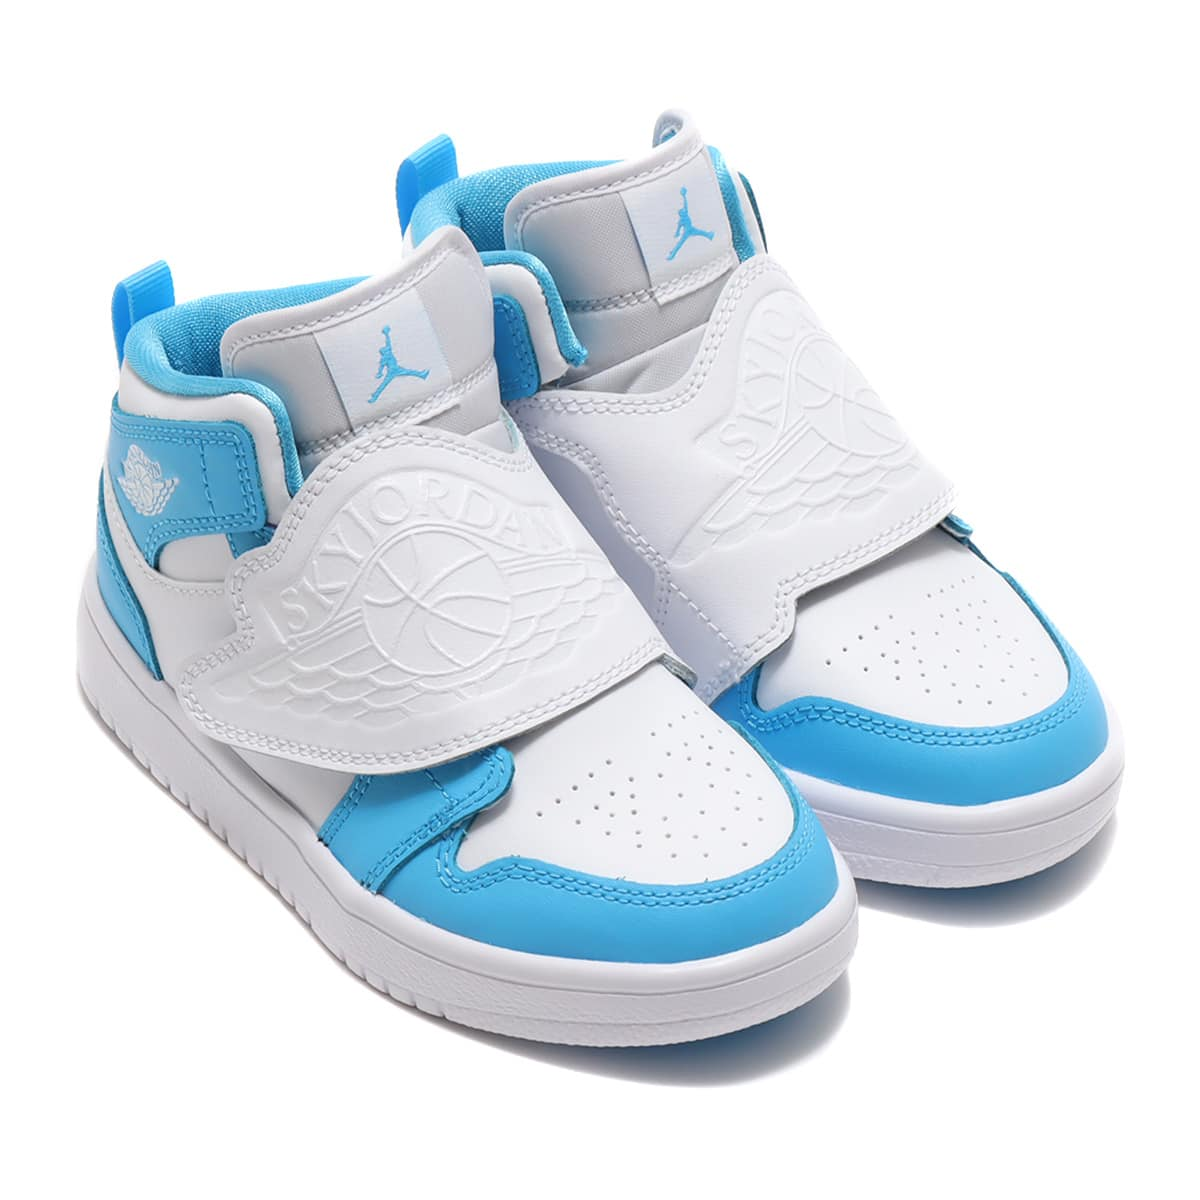 JORDAN BRAND SKY JORDAN 1 (PS) WHITE/DK POWDER BLUE 20FA-I_photo_large